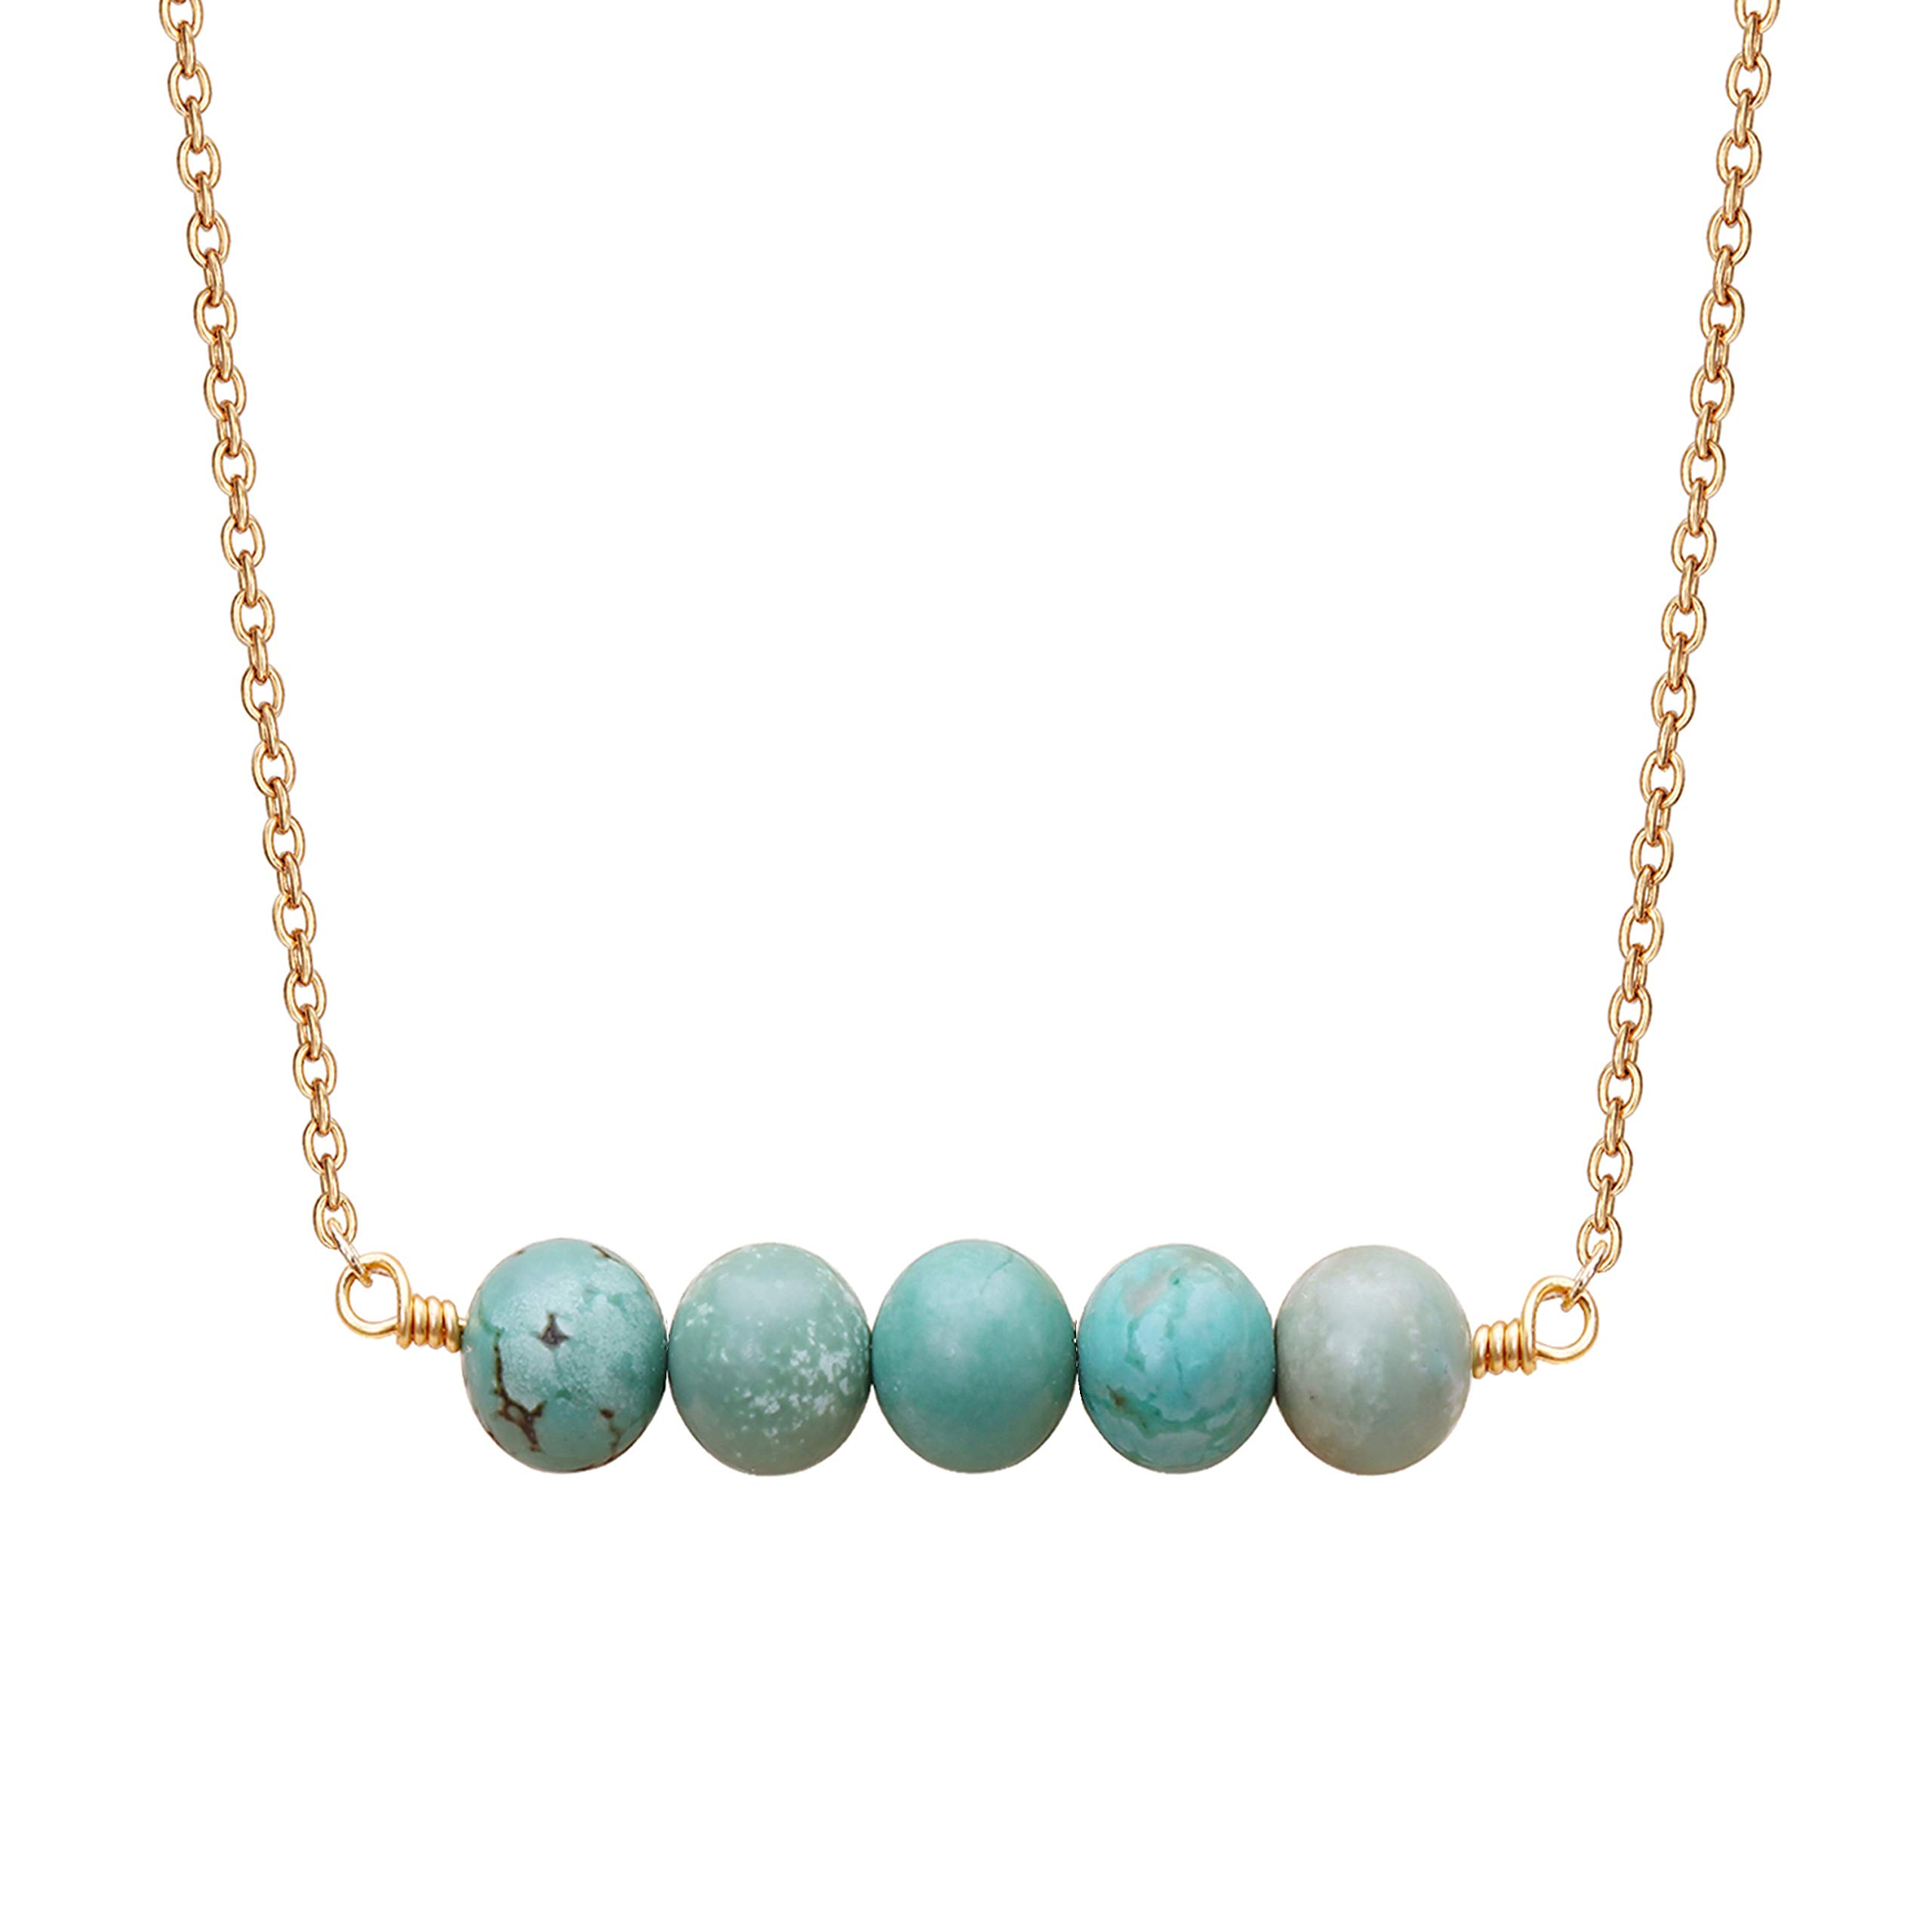 AUSIKA Adjustable Natural Turquoise Pendant Custom Necklace Choker with 20K Gold Plated Chain Jewelry for Women